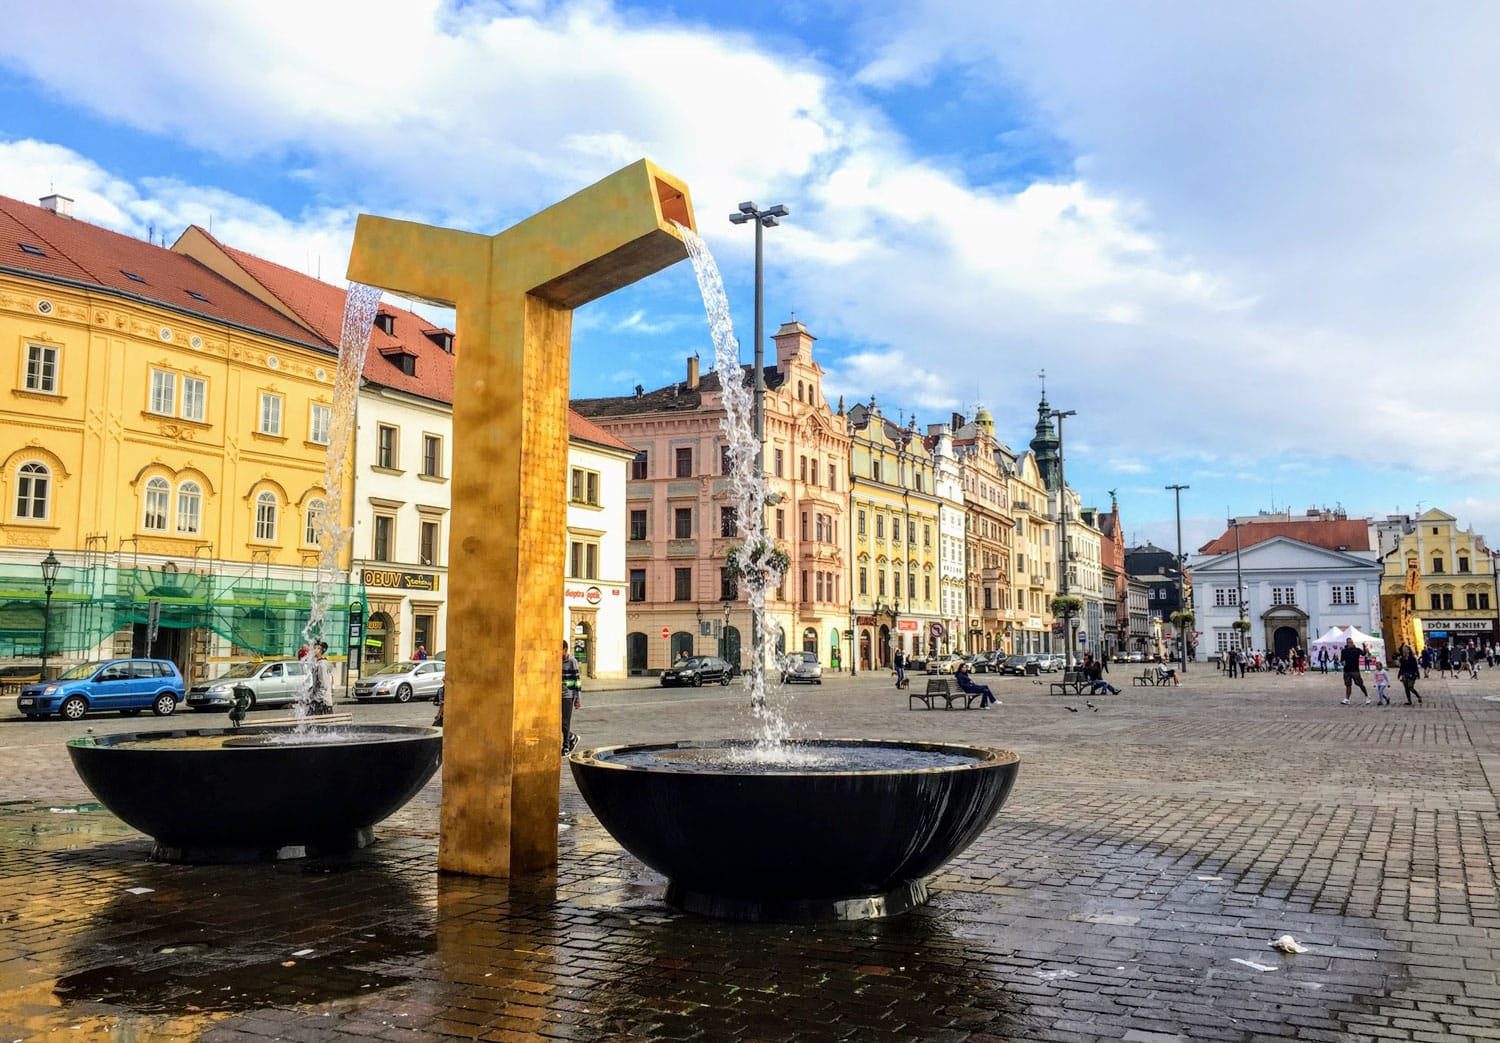 Fountain in Pilsen, Czech Republic